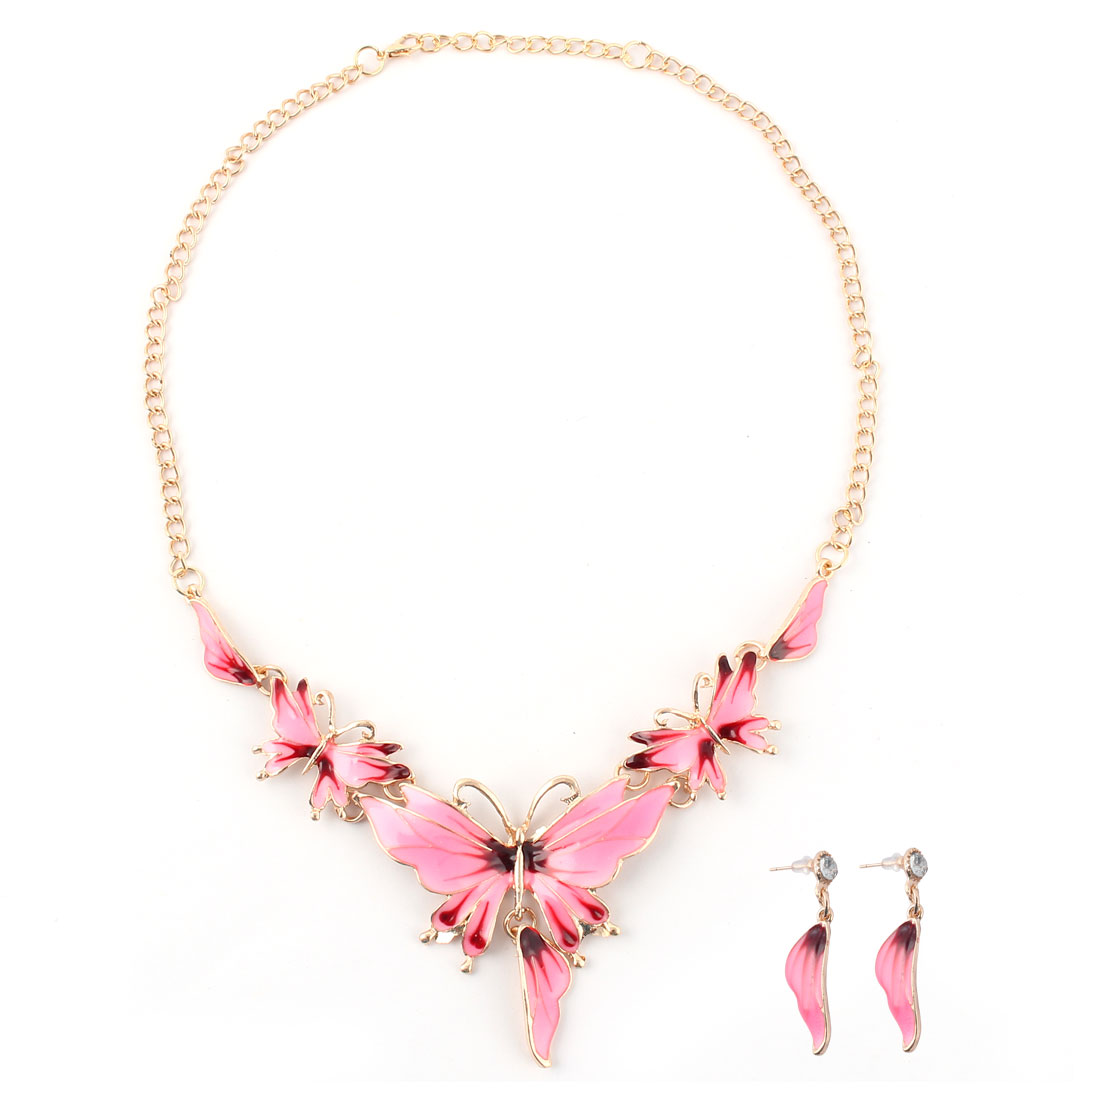 Lady Metal Vintage Style Butterfly Shape Chain Choker Necklace Earrings Set Pink